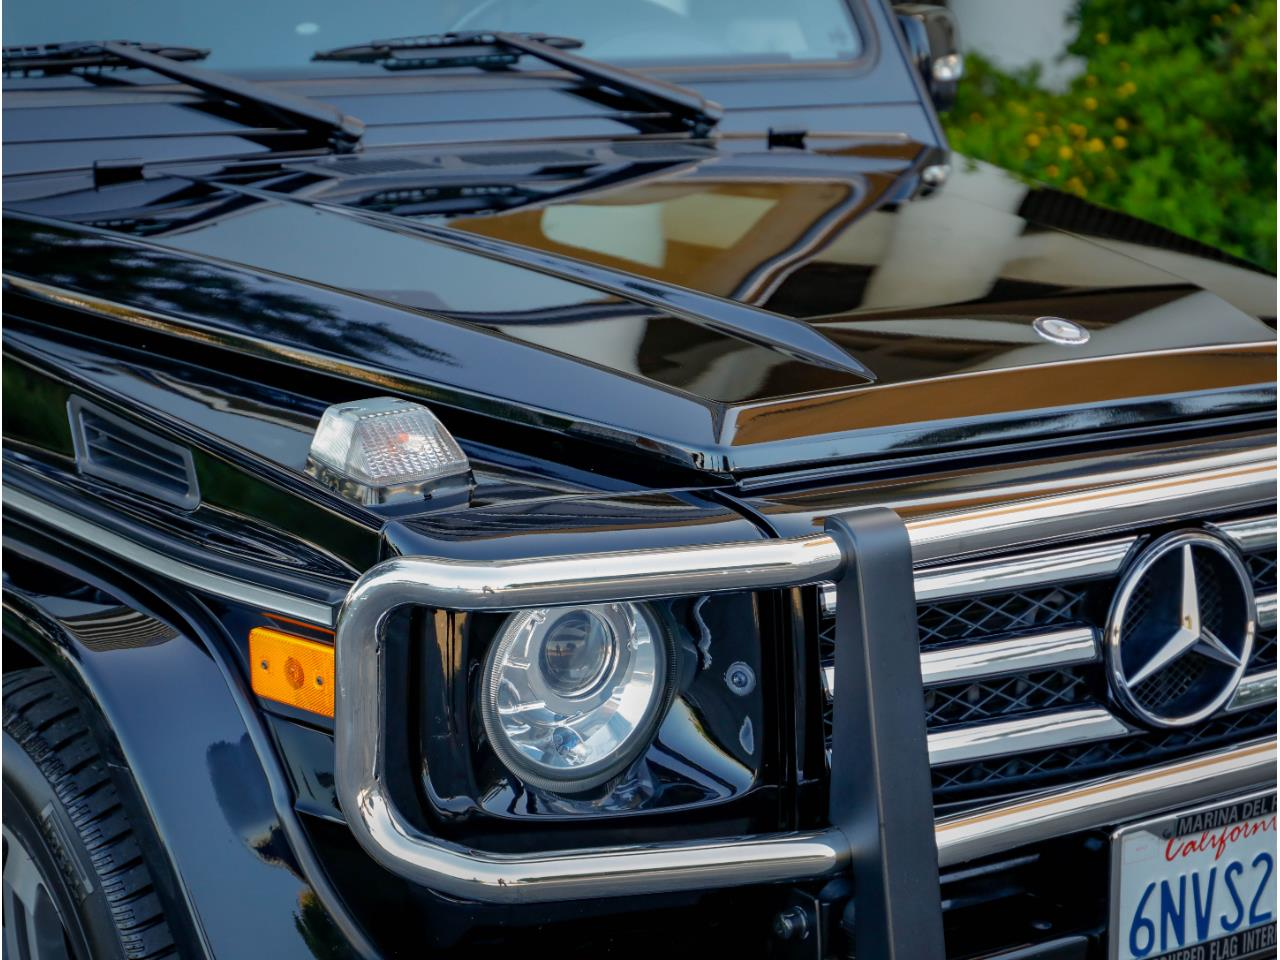 2011 Mercedes-Benz G550 for sale in Marina Del Rey, CA – photo 13